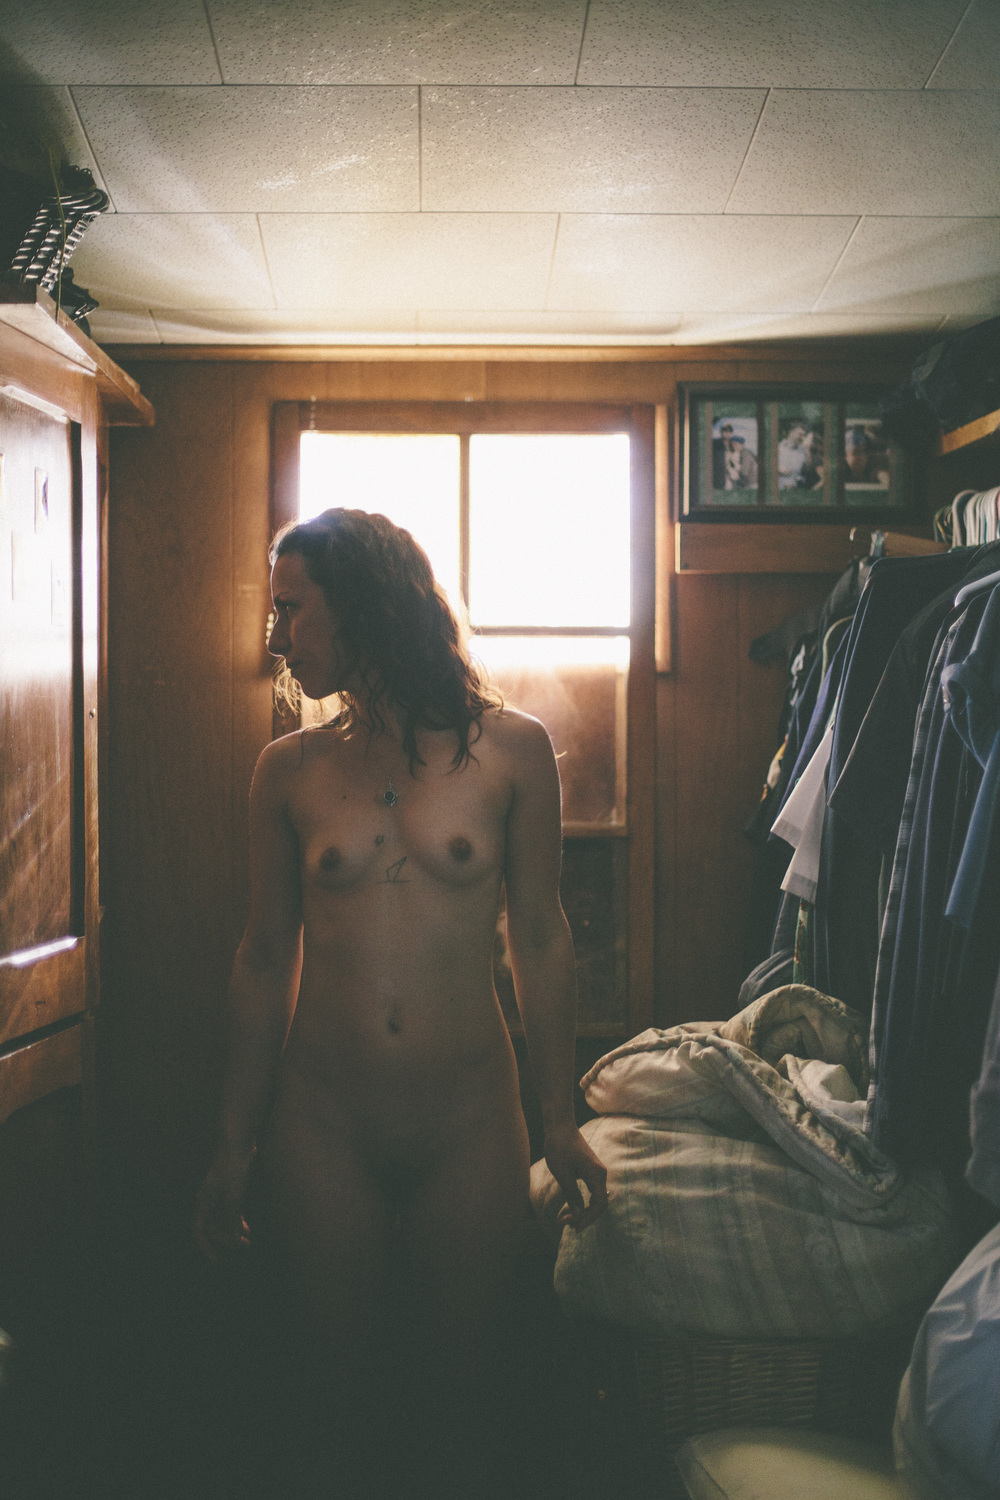 I woke up like this #022 fine art photography nudity body positivity 5